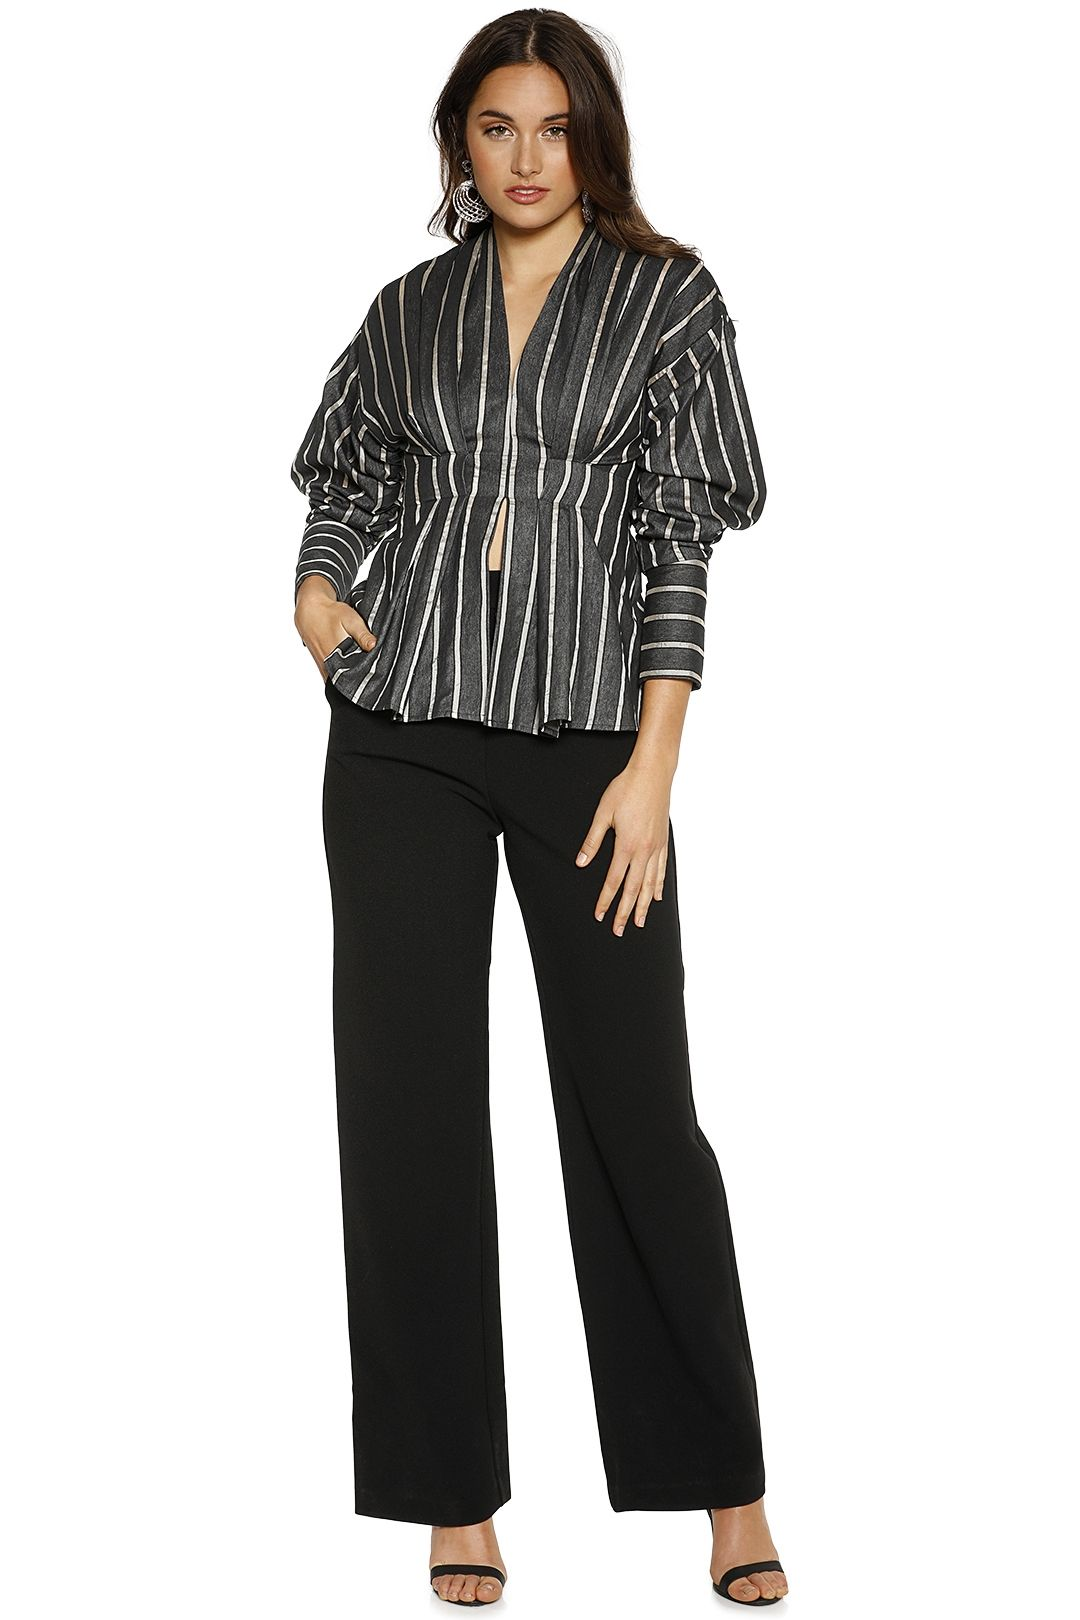 CMEO Collective - Moments Apart Top - Navy Stripe - Front